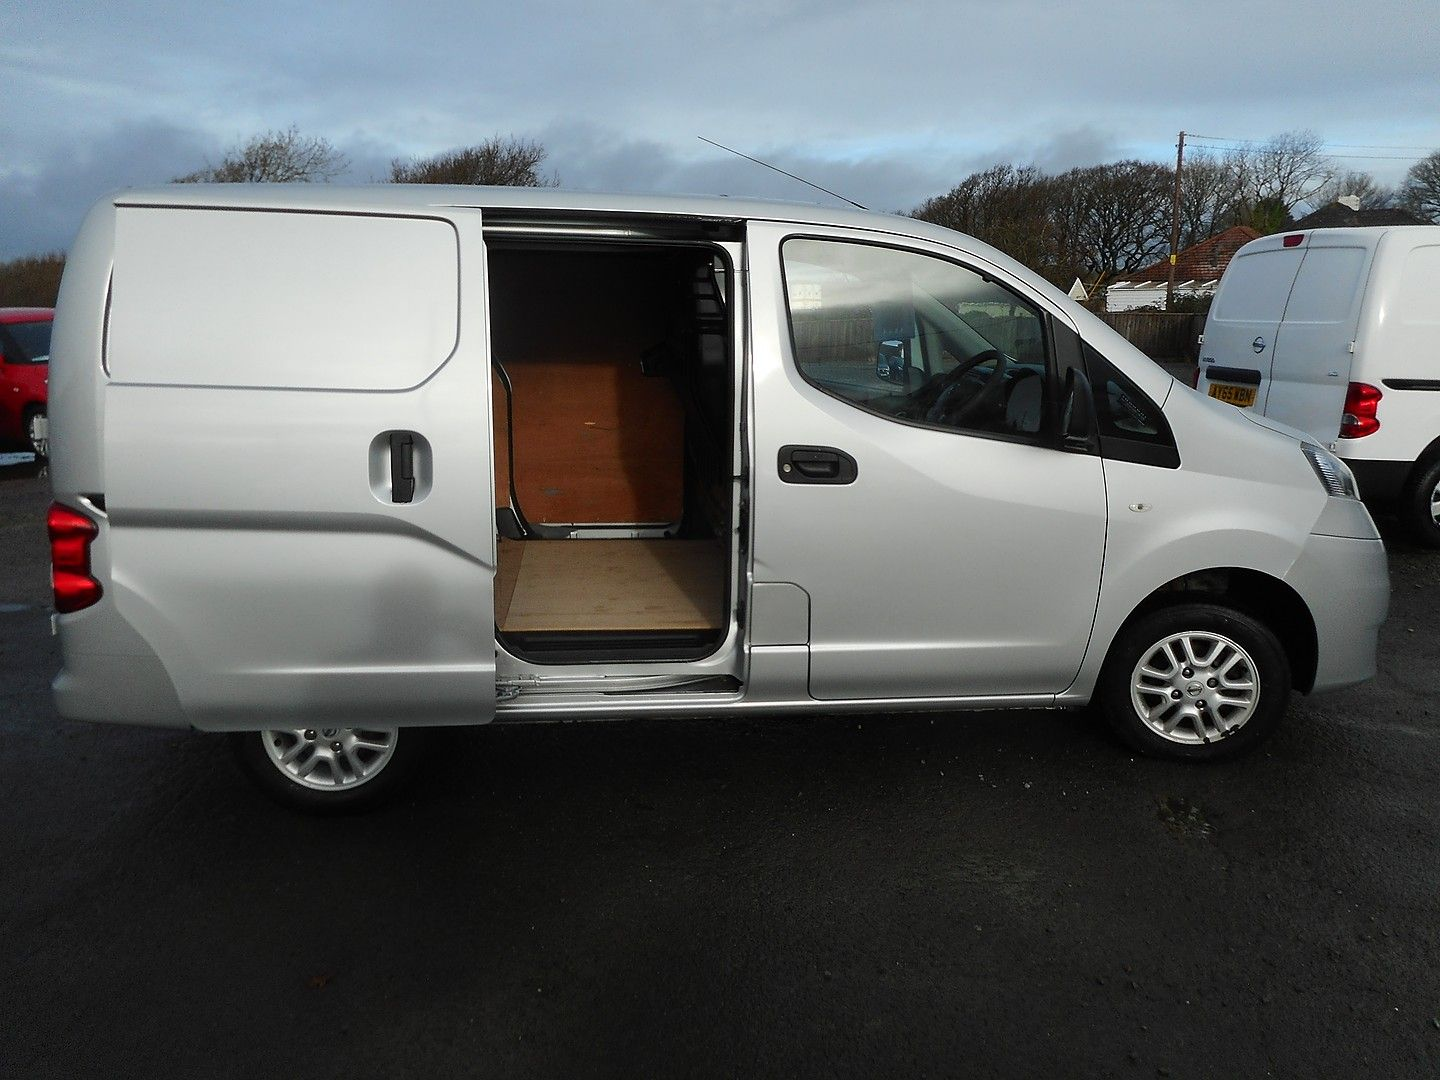 NISSAN NV200 Tekna 1.5 dCi 110PS (2014) - Picture 7